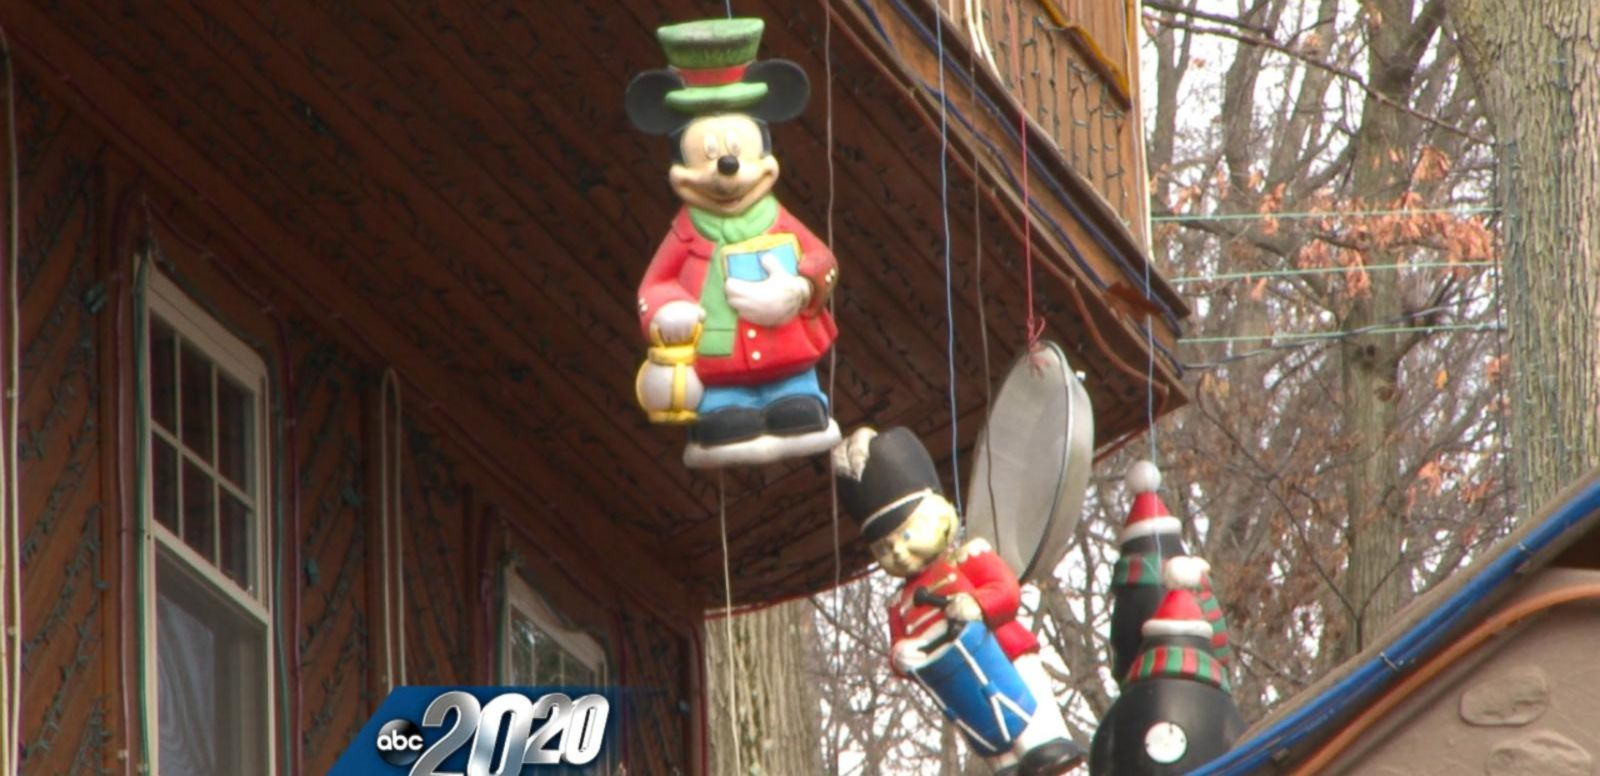 VIDEO: This Man's Holiday Display Is Making Neighbors Want to Move Away